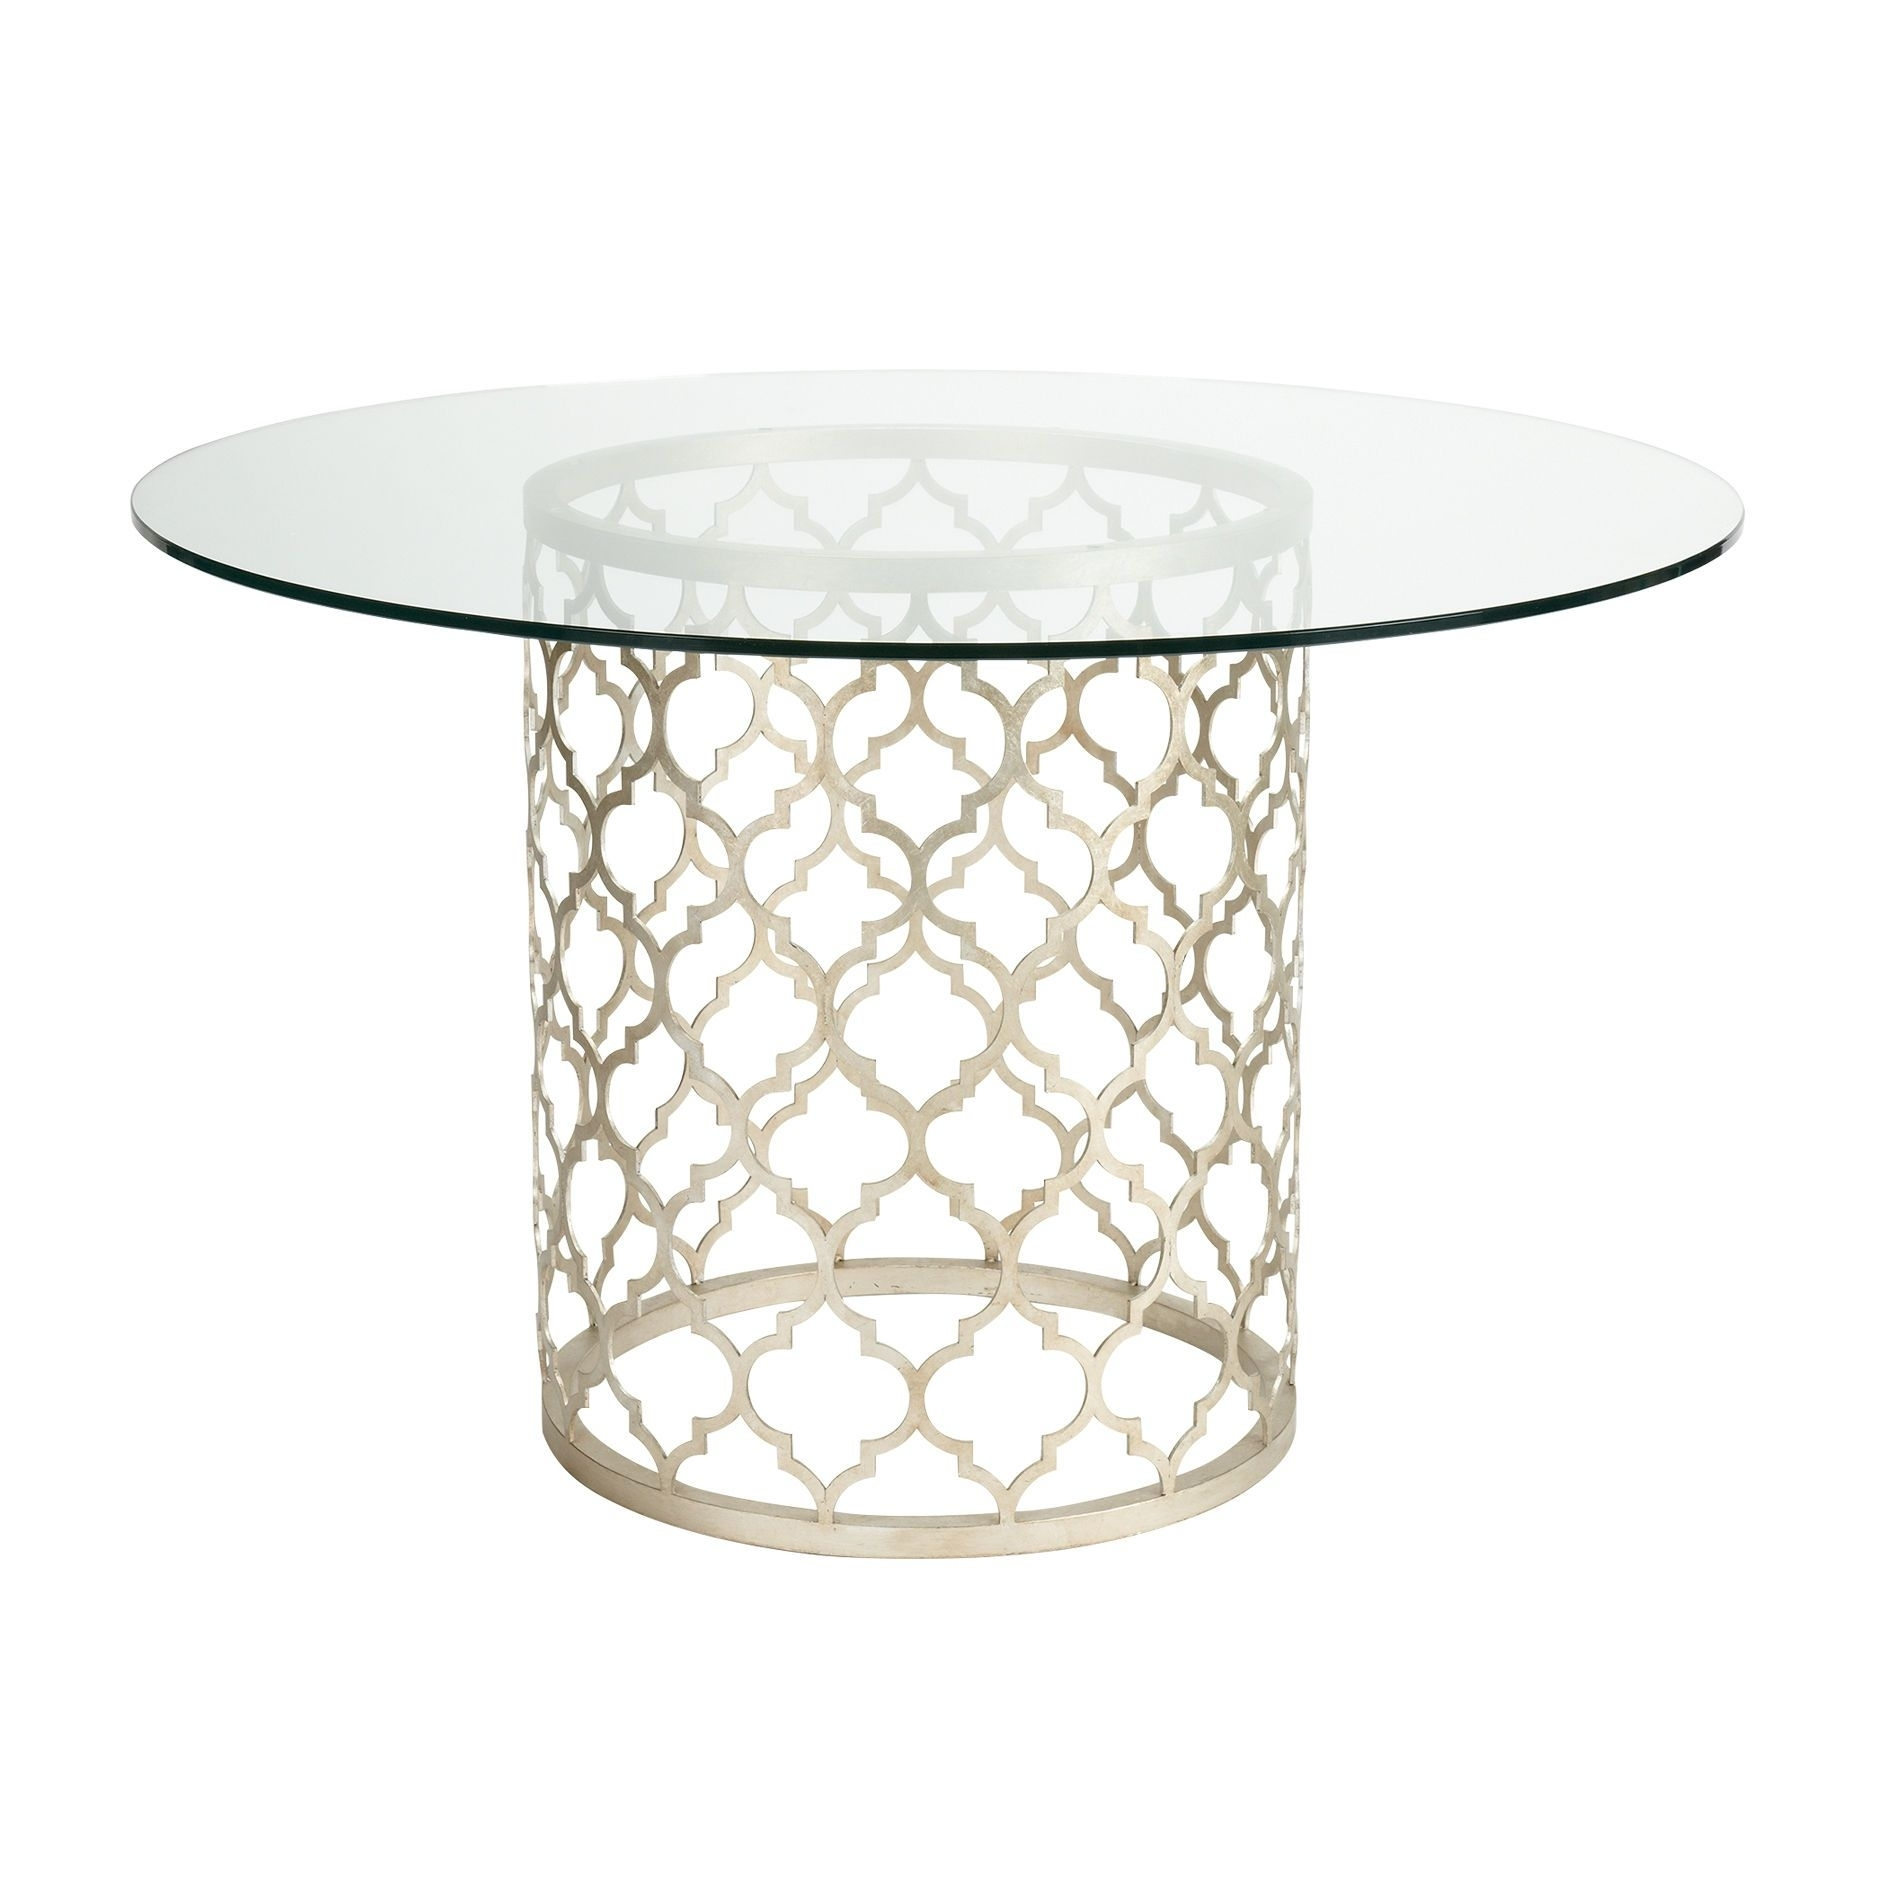 Tracery Dining Table – Ethan Allen Us. Round Glass Dining Tables Within Latest Norwood 7 Piece Rectangular Extension Dining Sets With Bench, Host & Side Chairs (Photo 16 of 20)